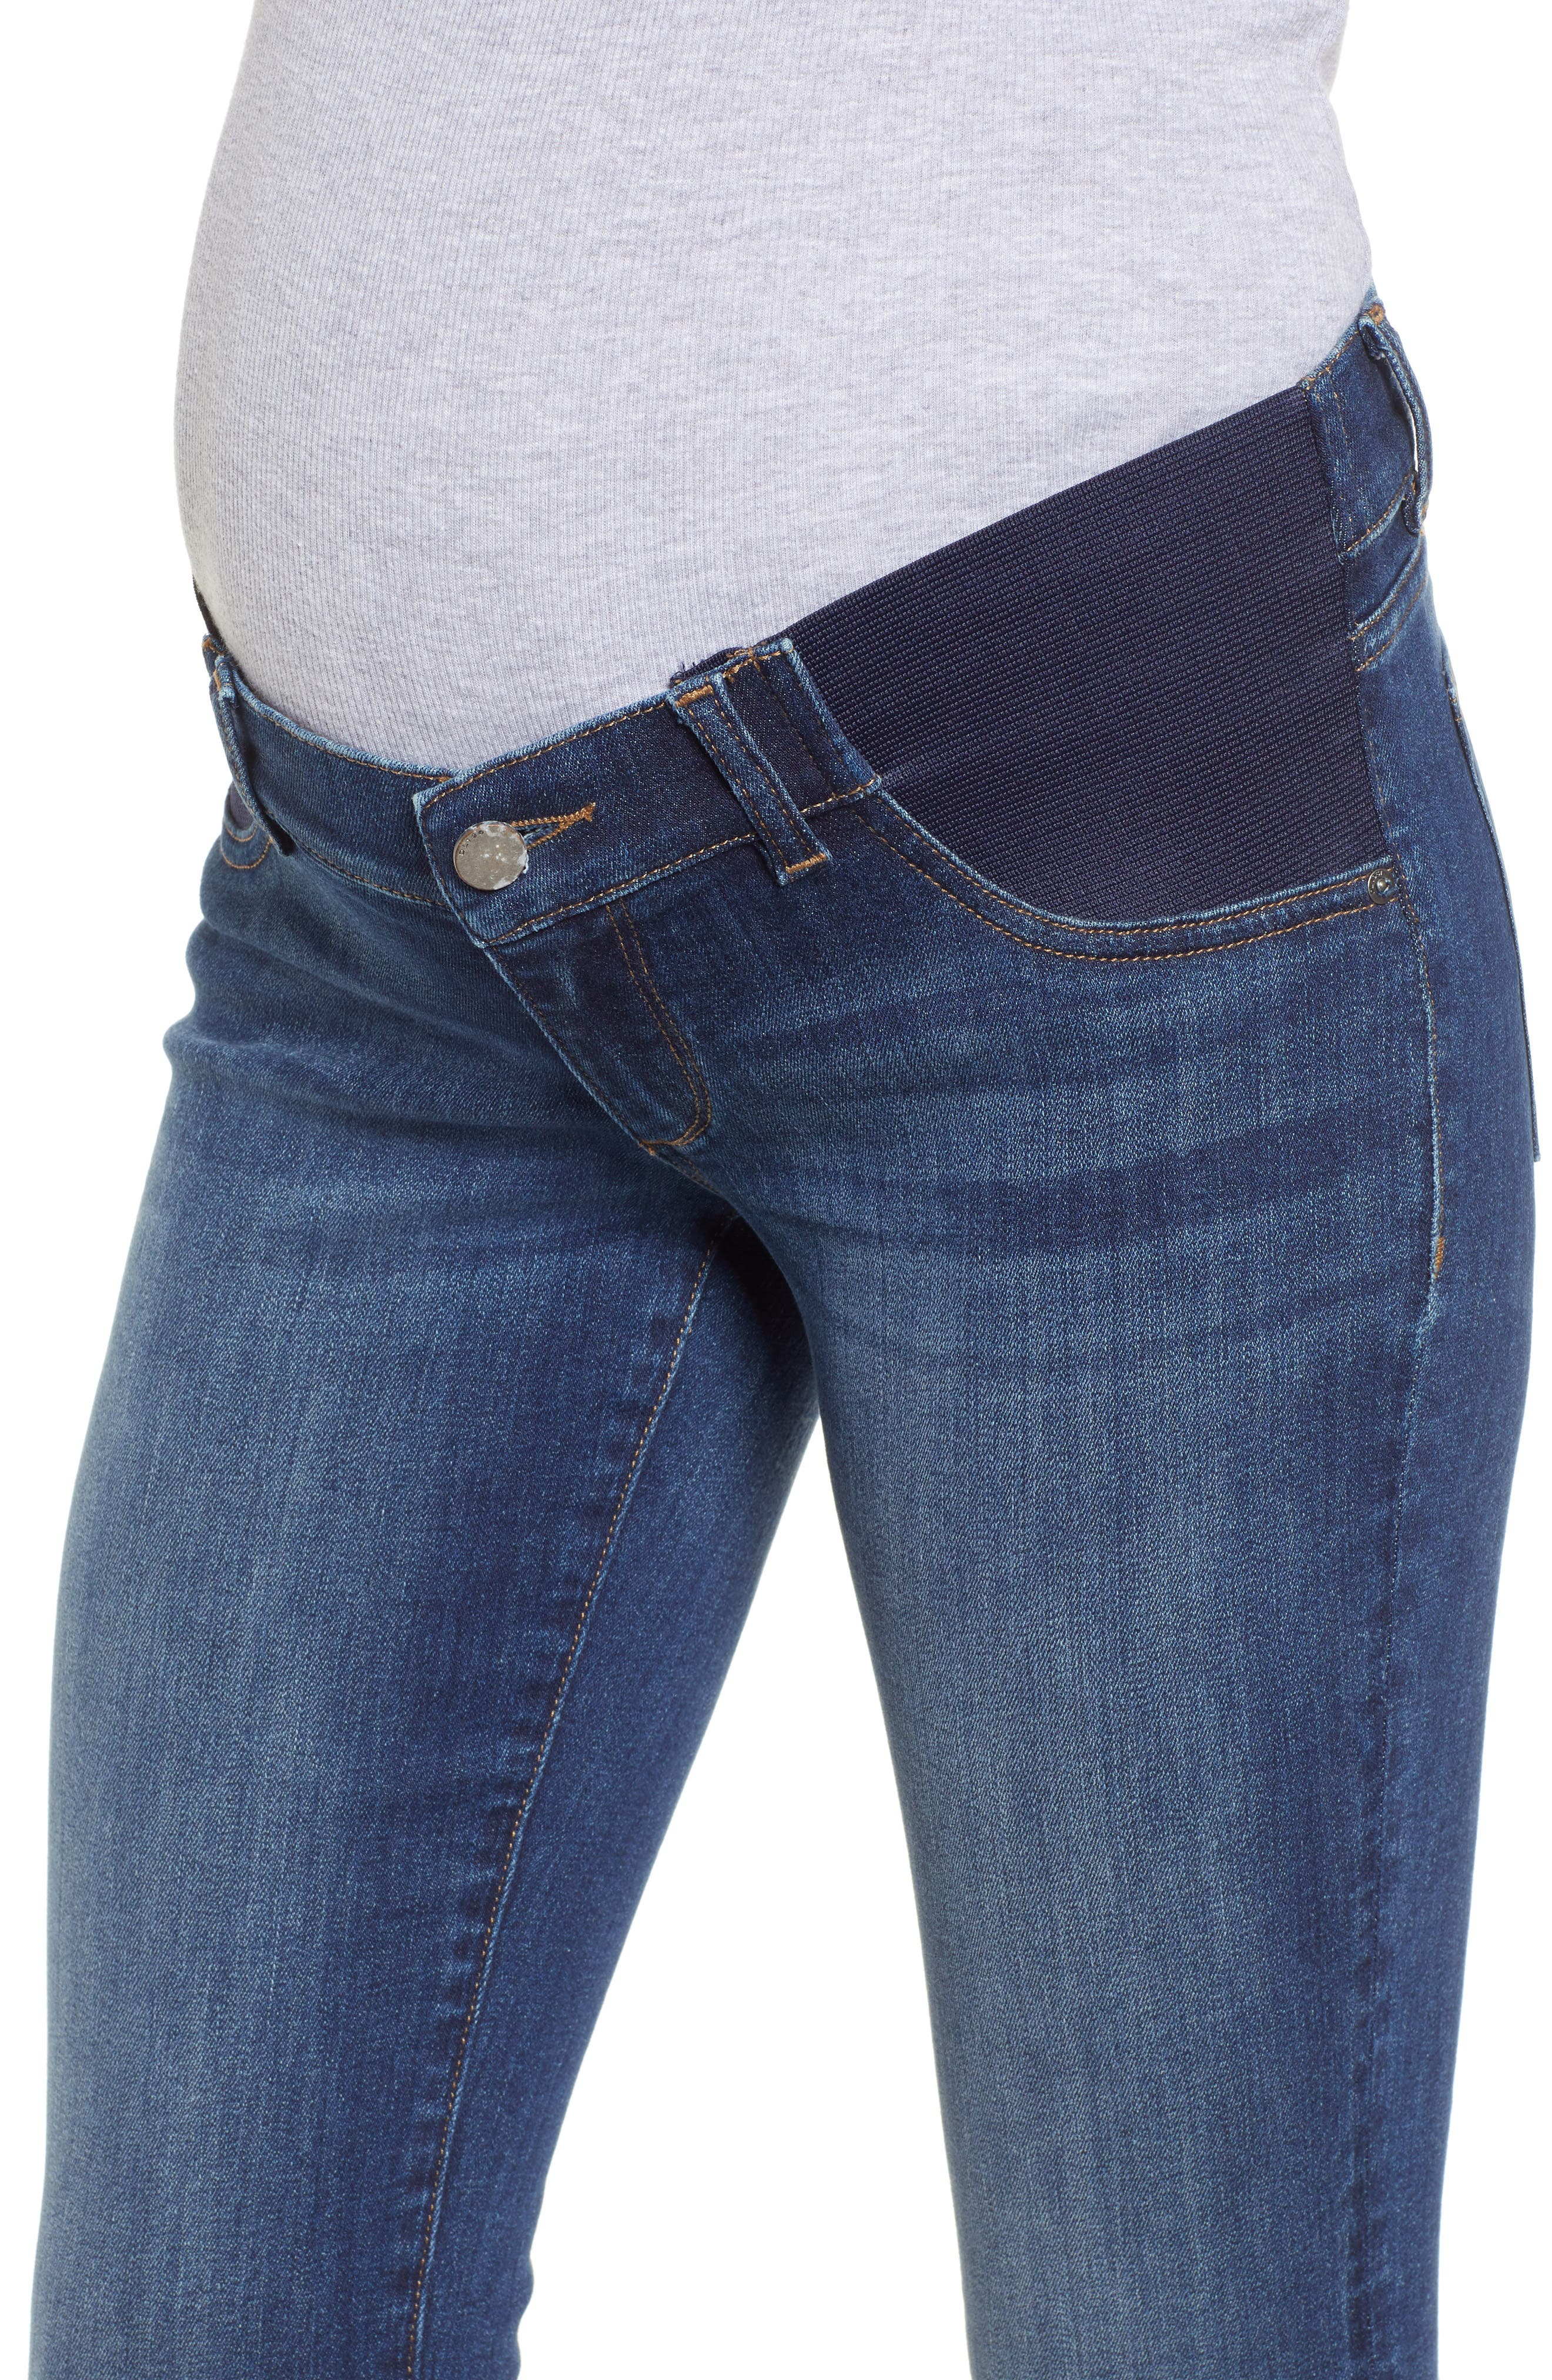 Florence Maternity Skinny Jeans,                             Alternate thumbnail 4, color,                             001